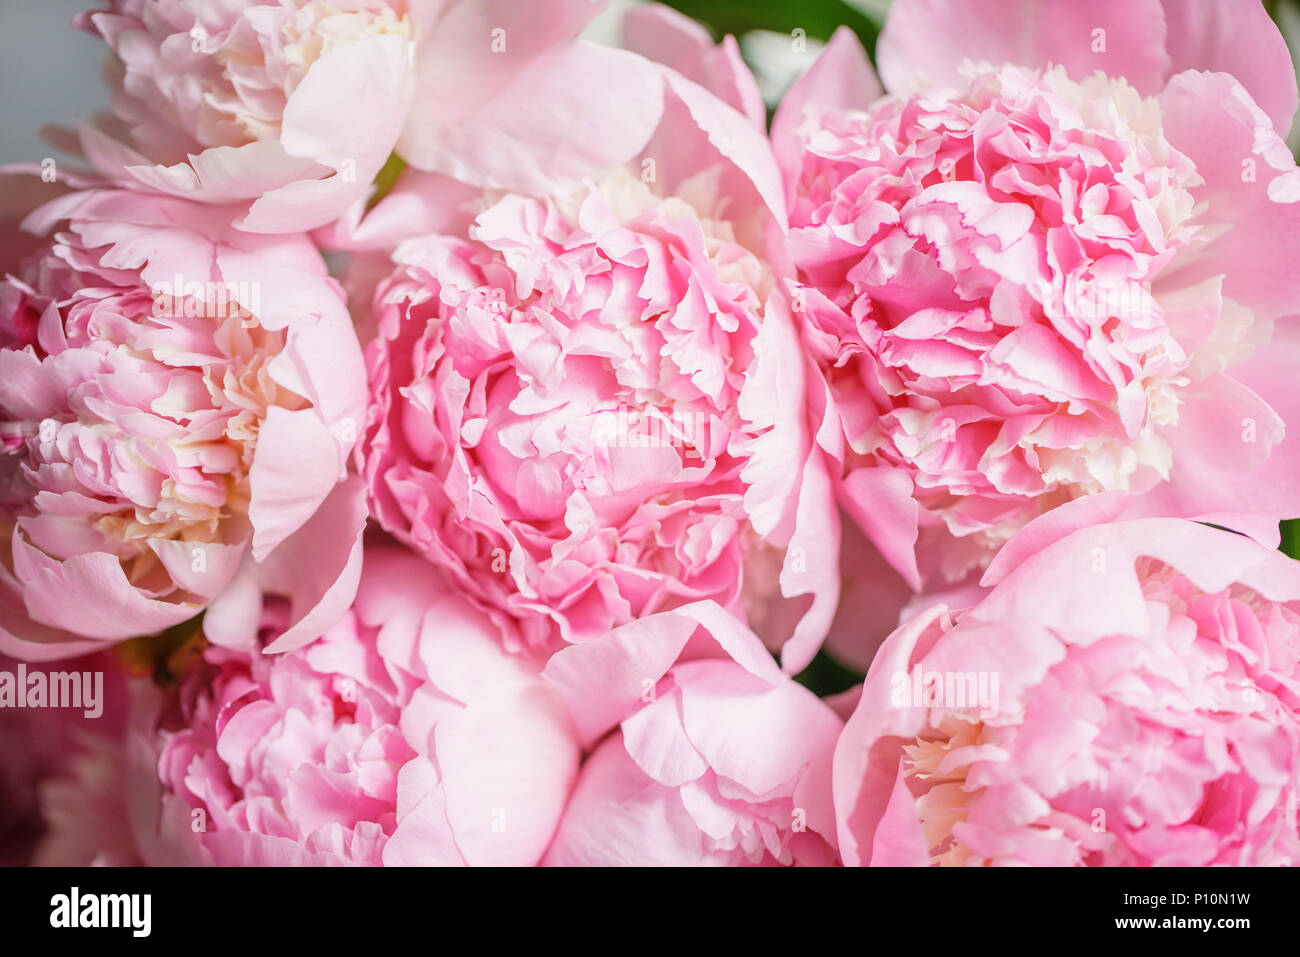 Lovely Flowers In Glass Vase Beautiful Bouquet Of Pink Peonies Floral Composition Scene Daylight Wallpaper